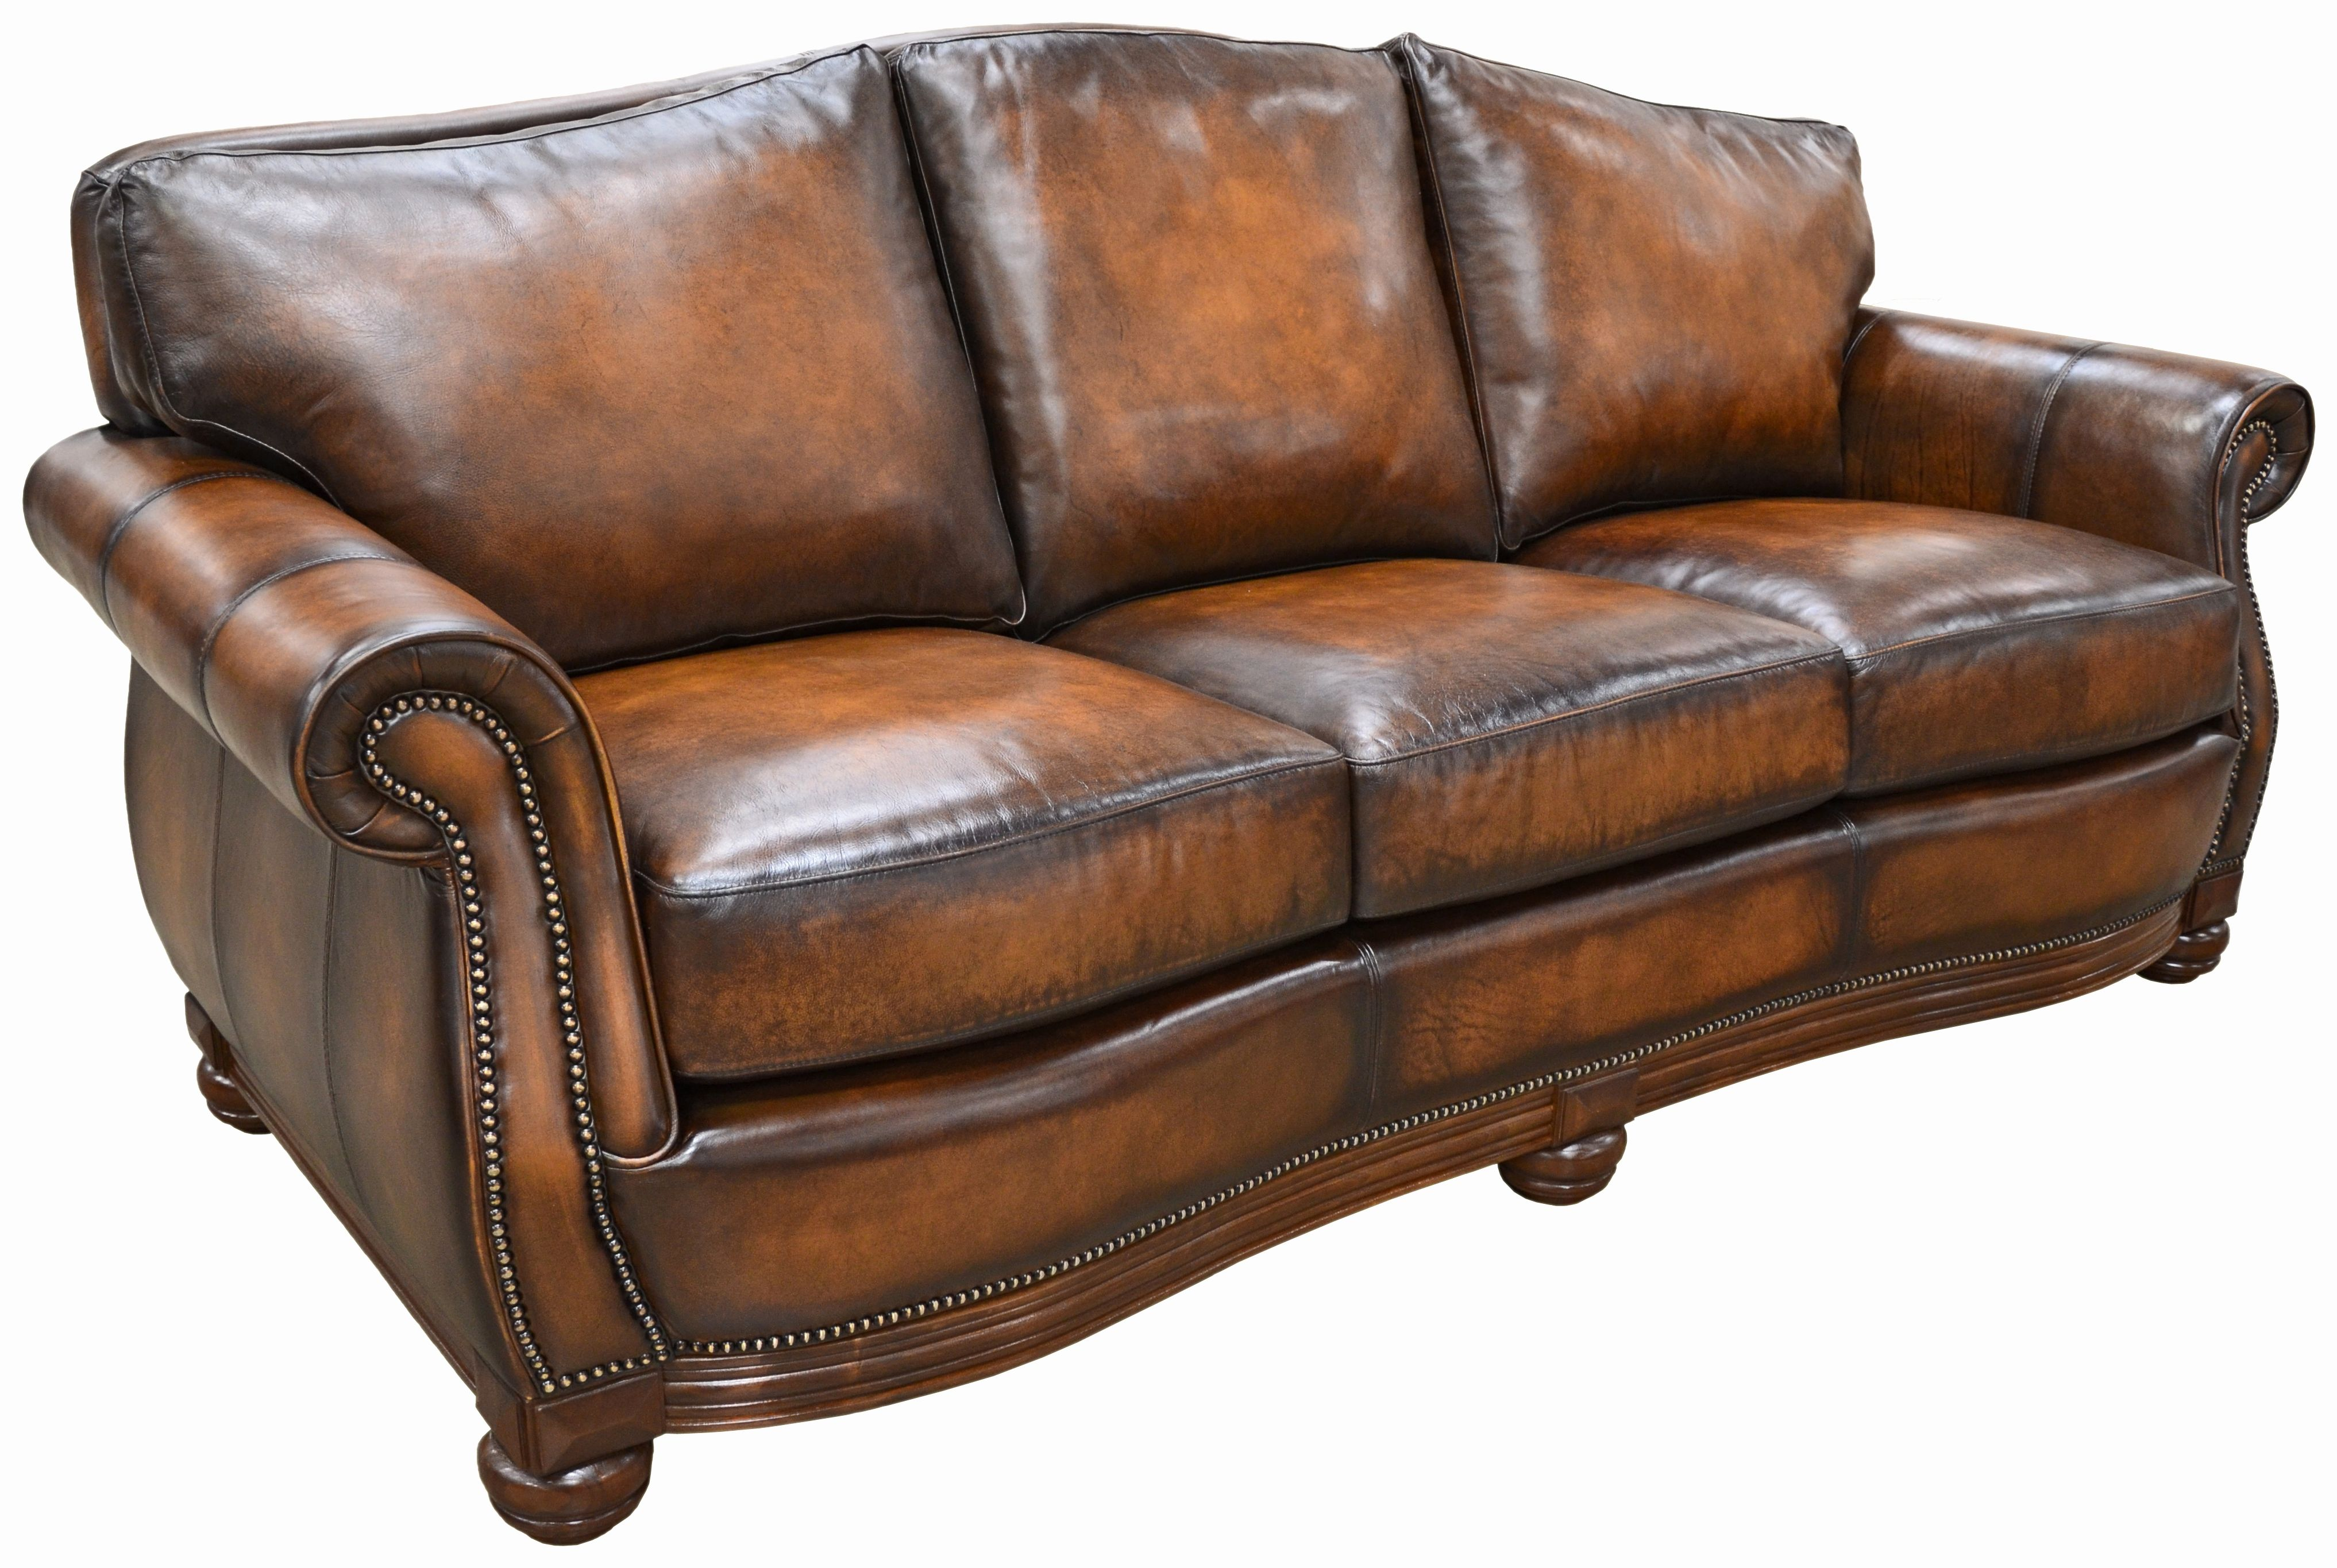 Superieur Luxury Burgundy Leather Sofa Graphics Sofas Fabulous Burgundy Leather Sofa  Nailhead Trim Leather Couch Check More